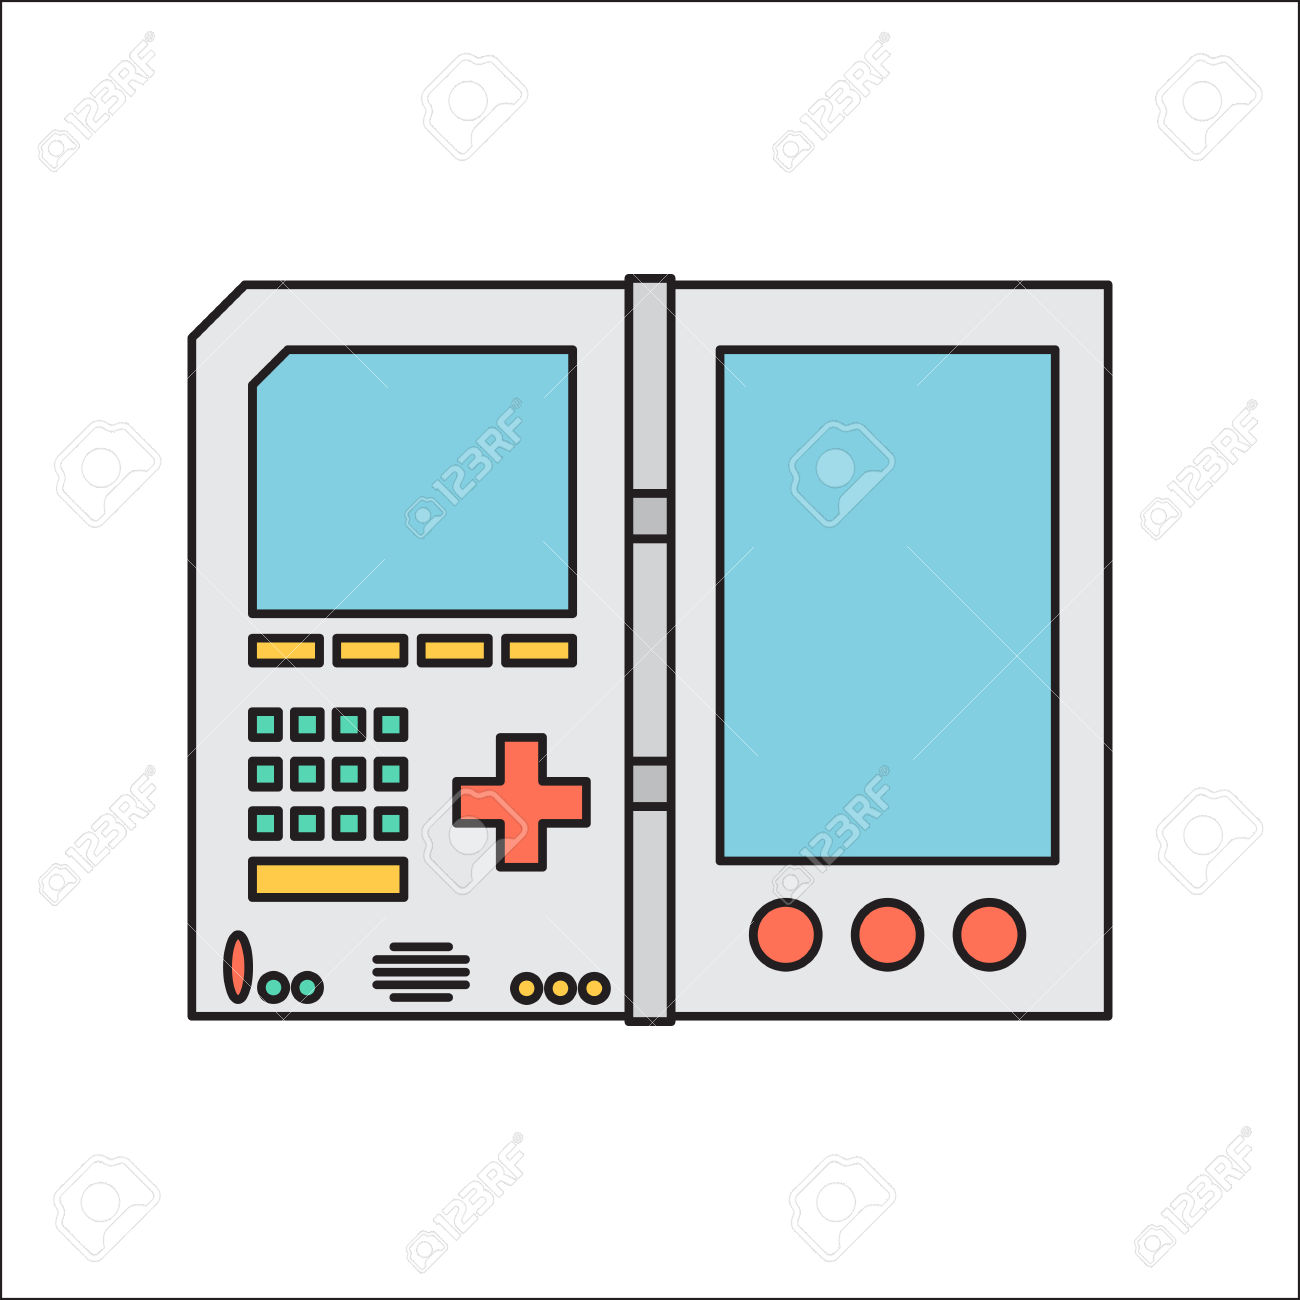 Old Invent Gadget. Flat Designe. Handheld Console. Royalty Free.